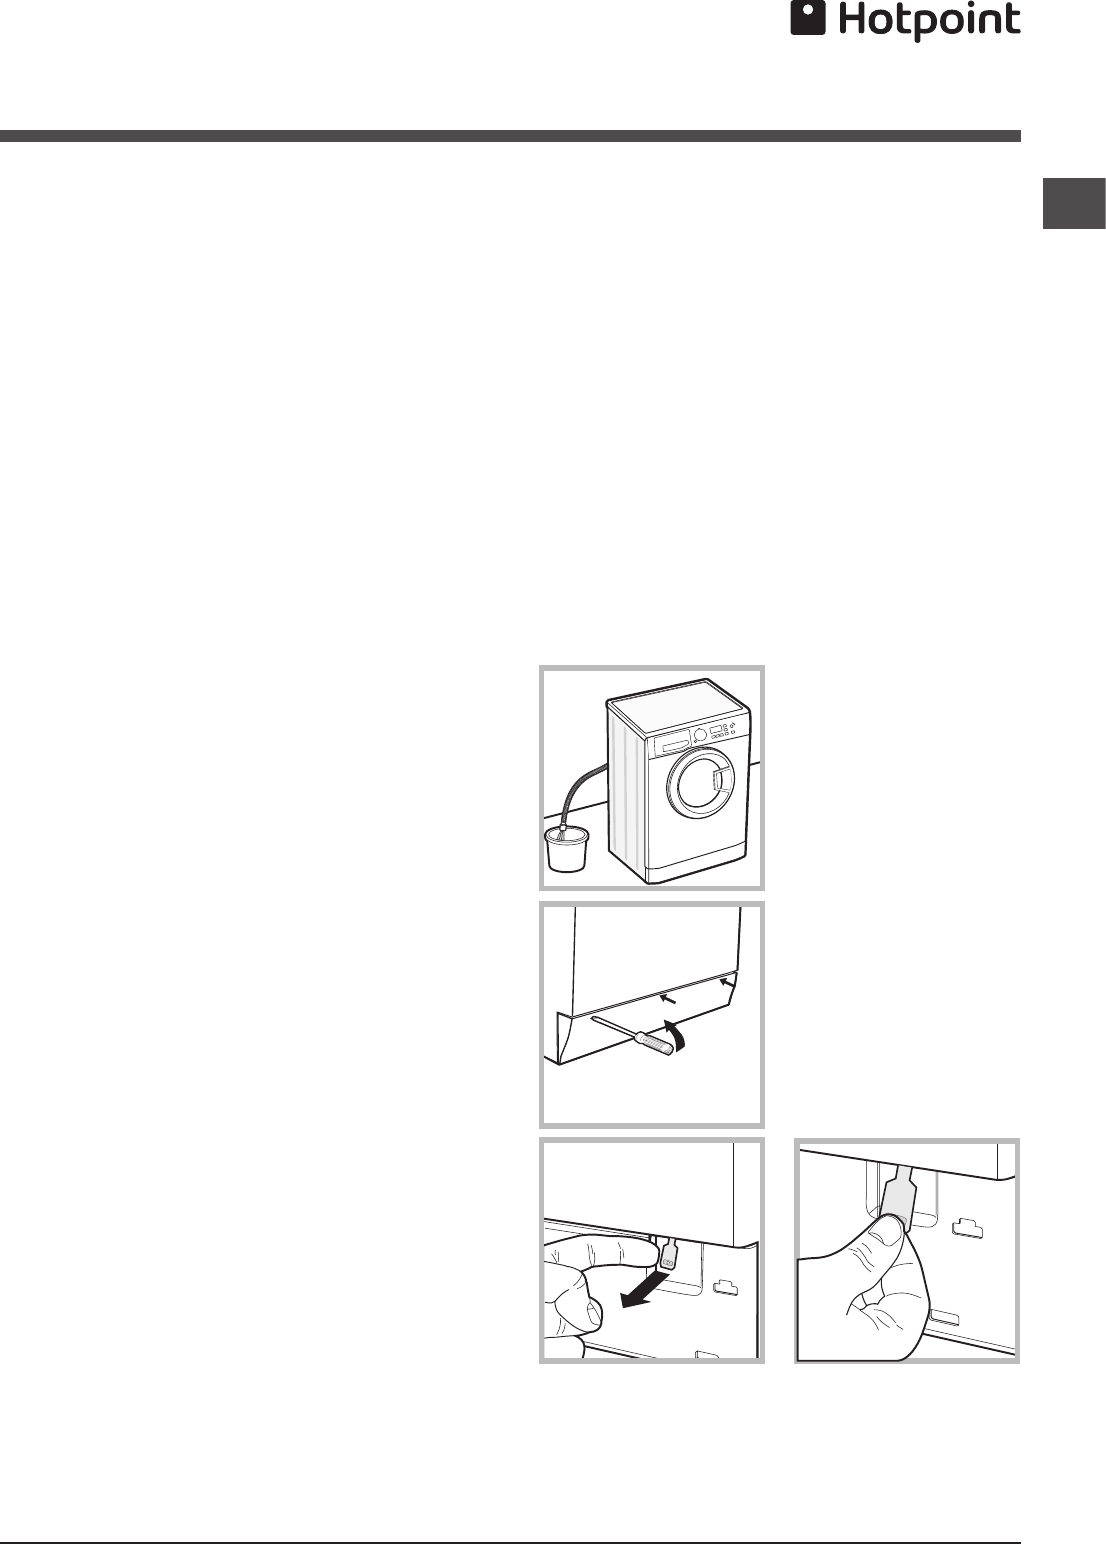 Hotpoint Wdpg 9640 Users Manual Wiring In Addition Un Imac Washer Diagram Moreover Dryer 7